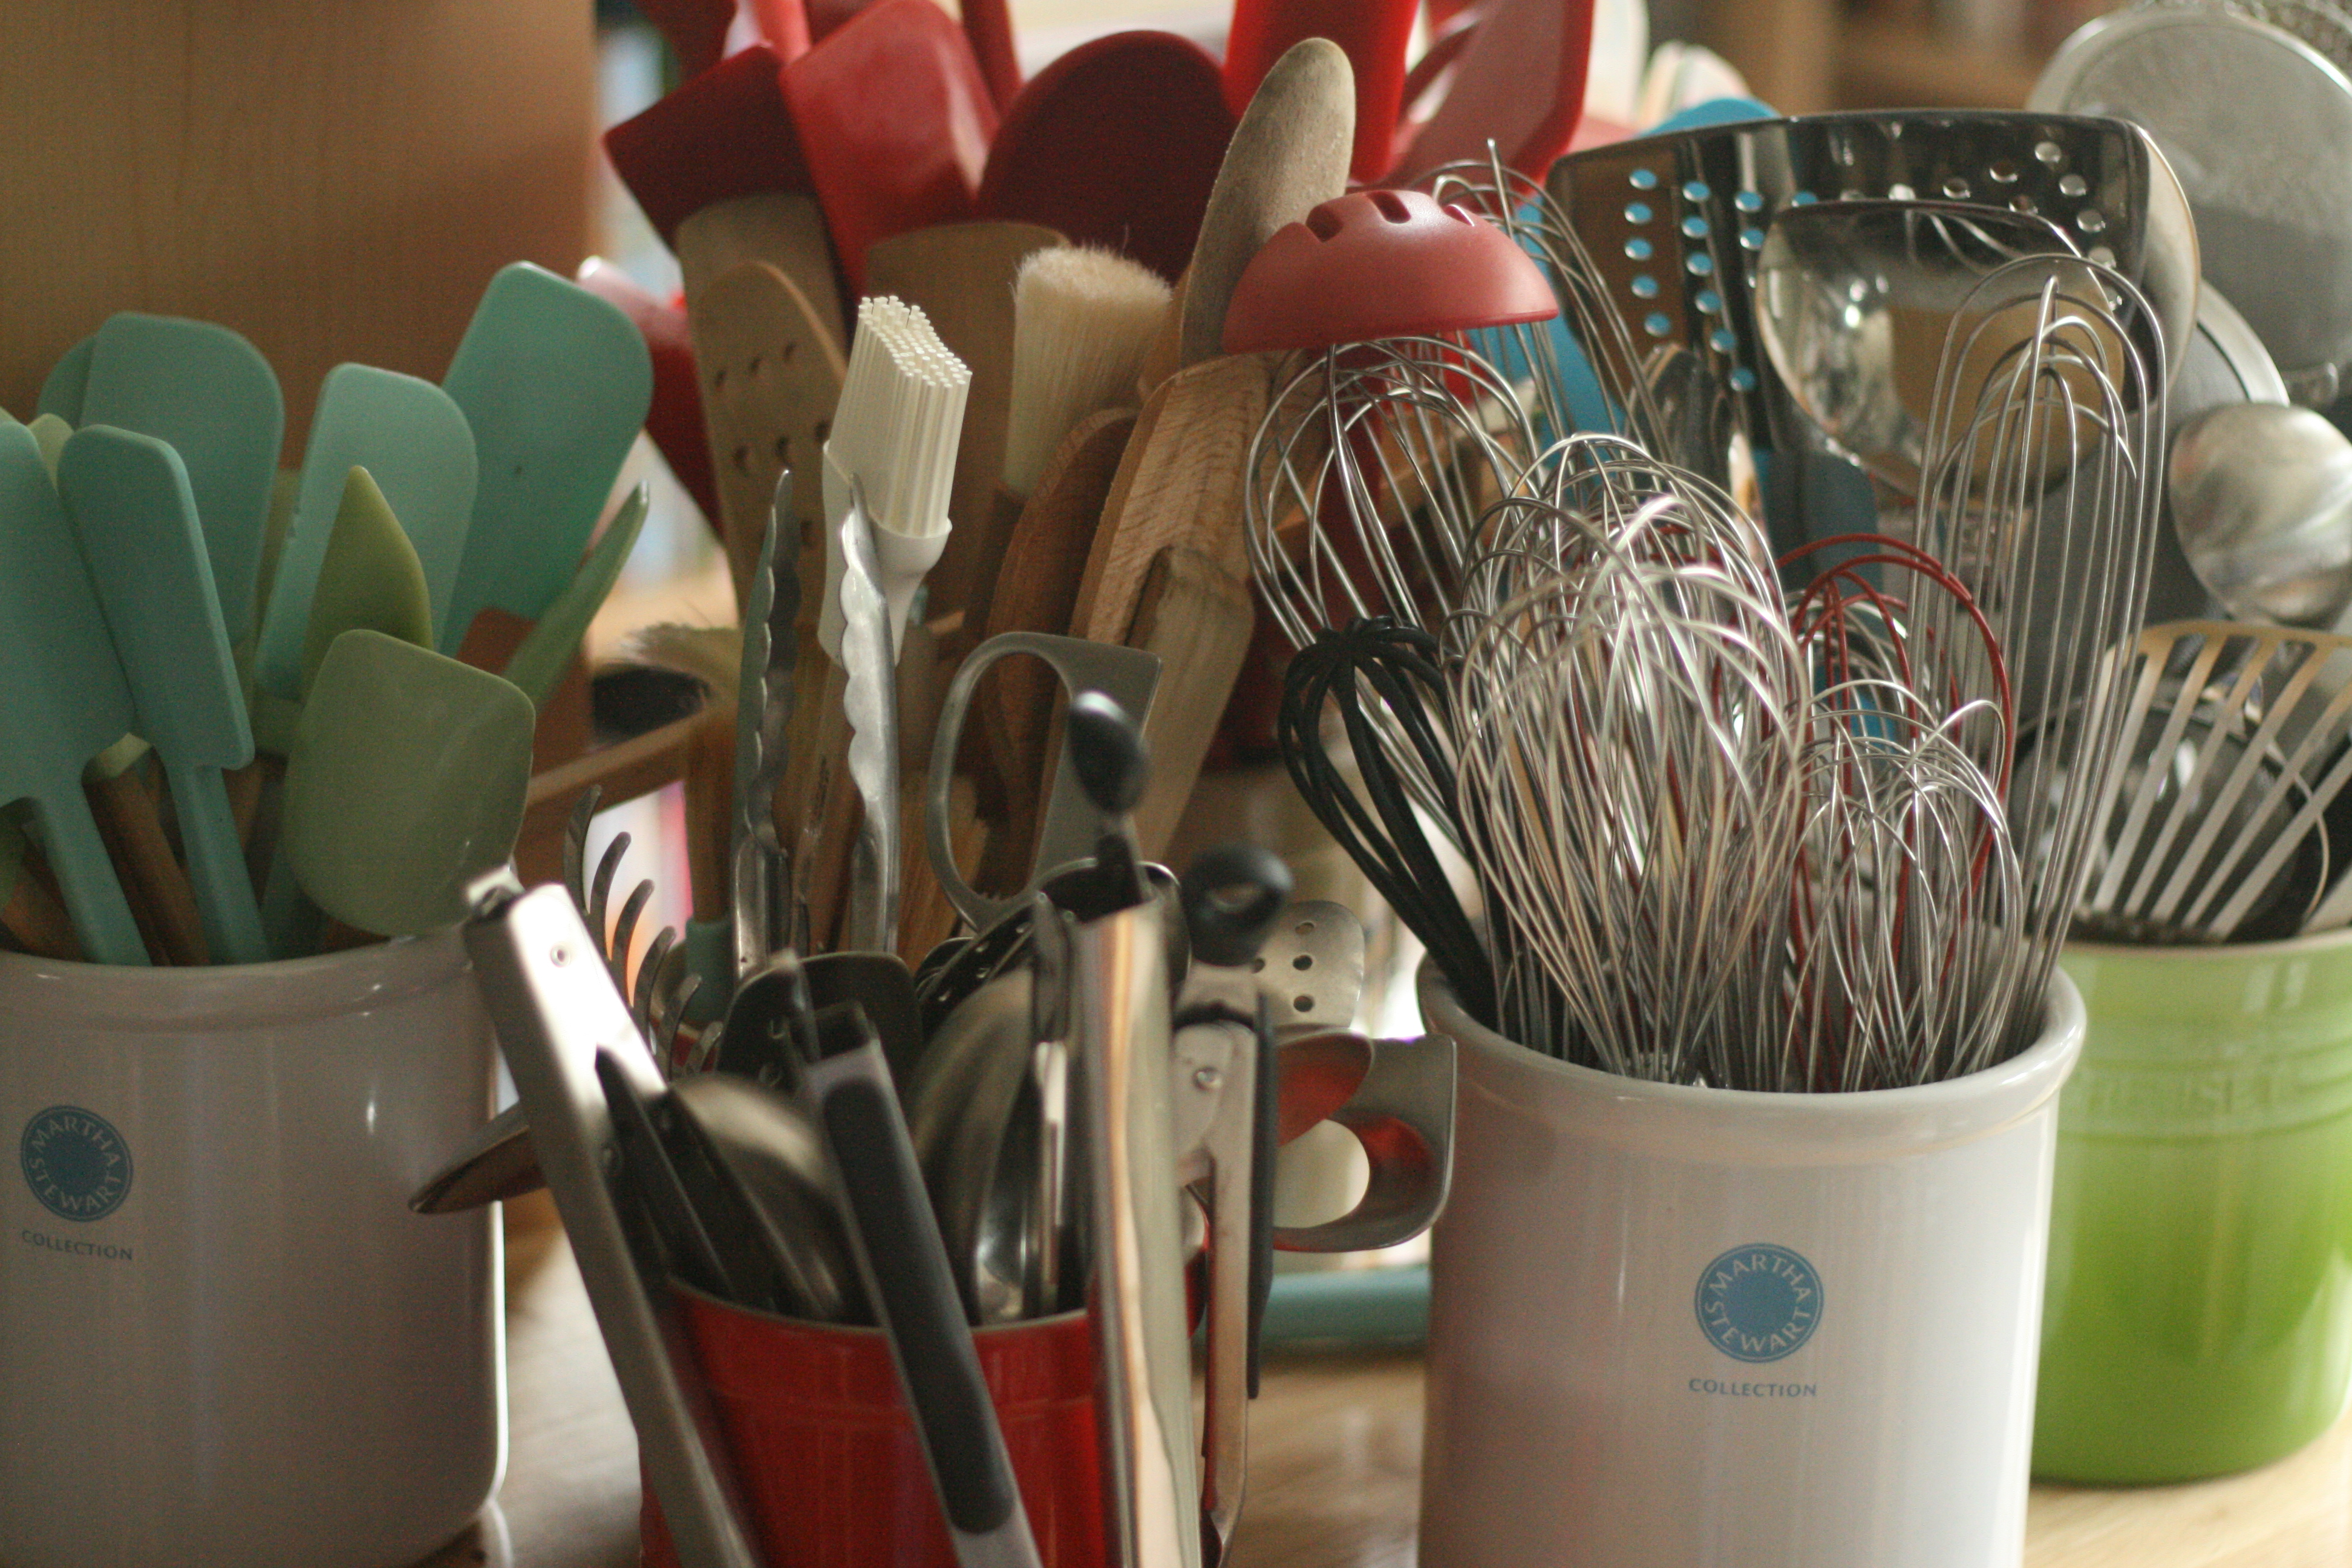 I Have A Ton Of Kitchen Gadgets Whisks In Many Sizes Brushes Graters Spatulas Etc My Aunt Told Me Once That Can Never Too